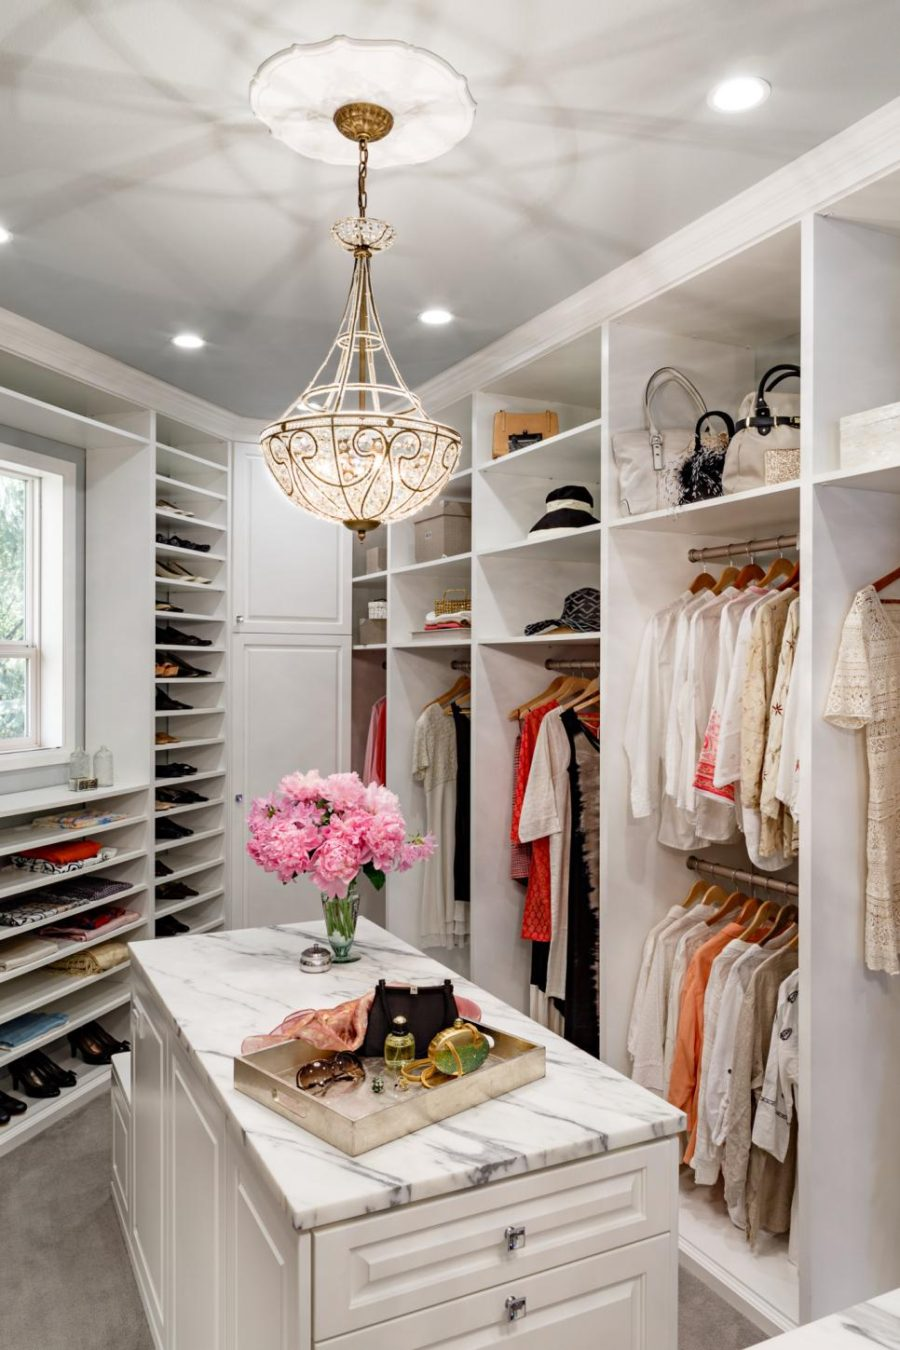 Customized closet by Mosaik Design & Remodeling